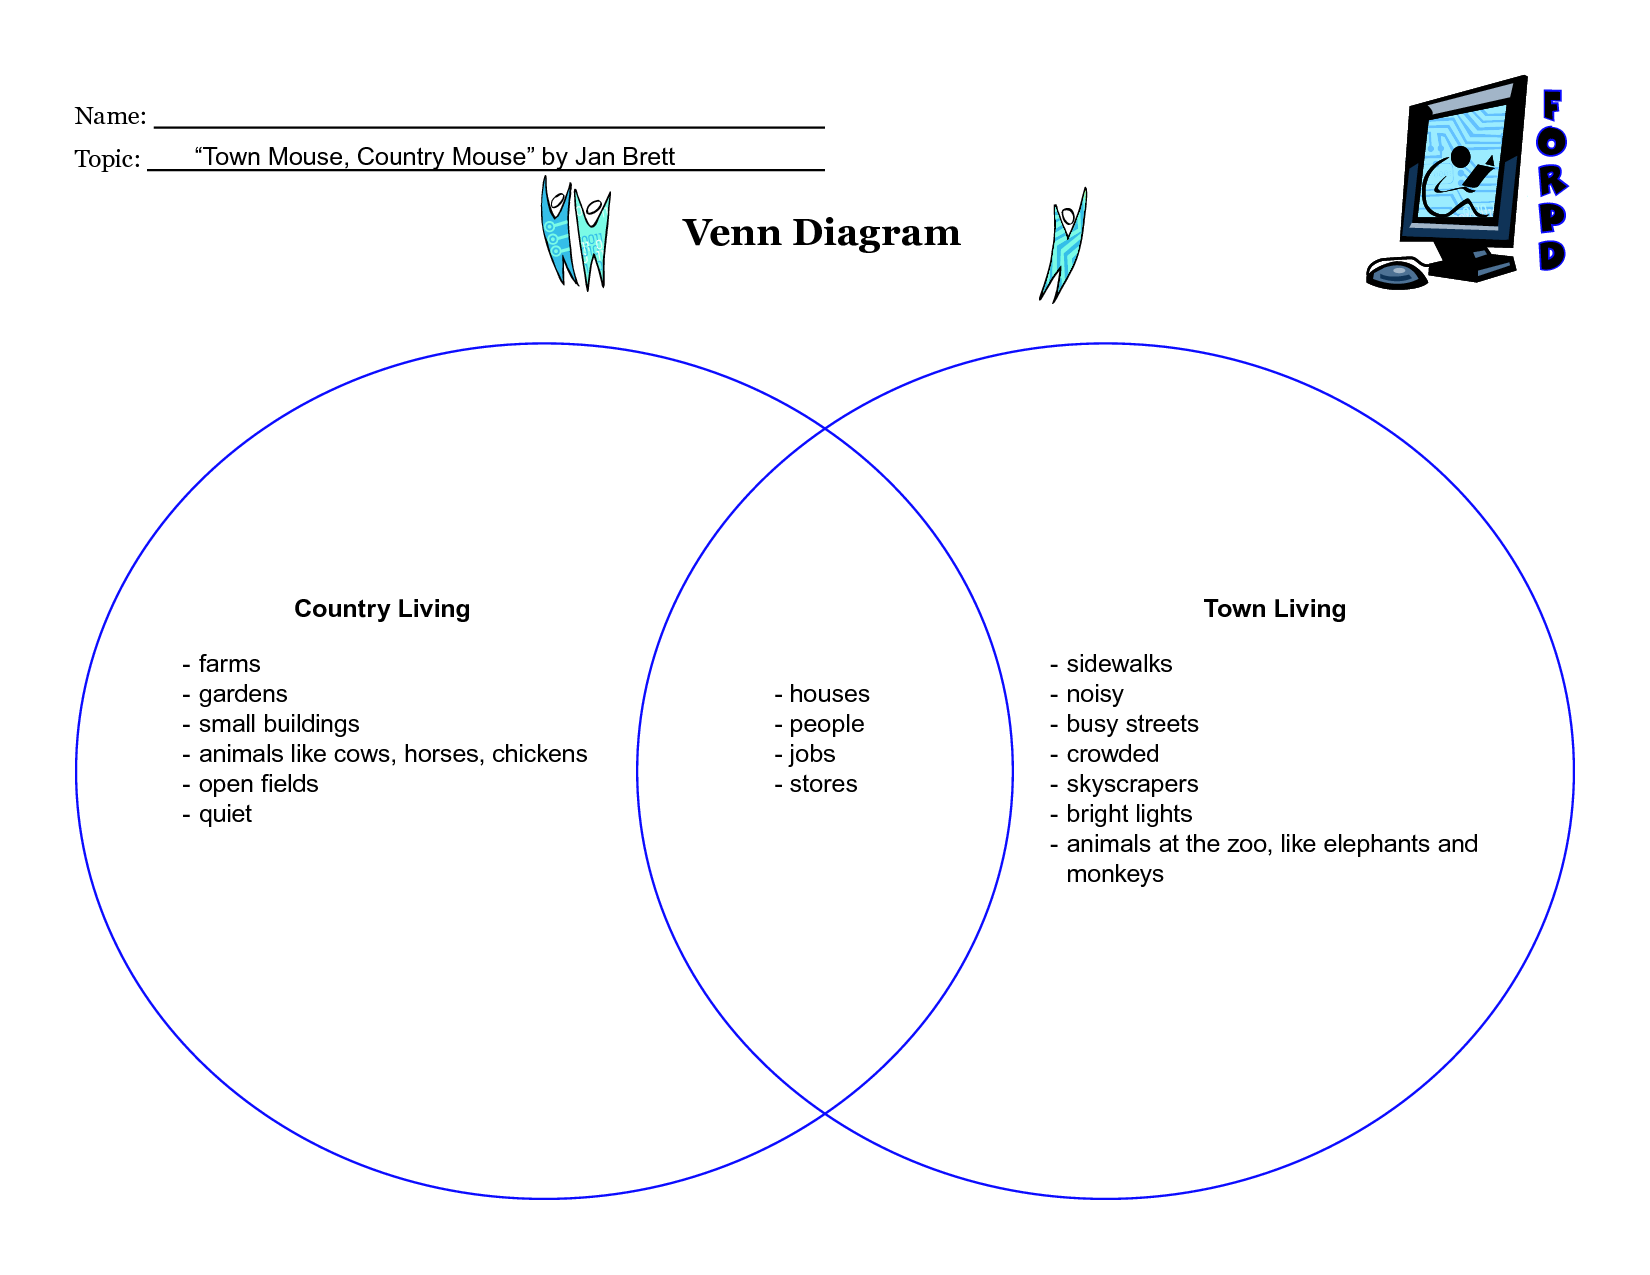 medium resolution of venn diagram worksheet country life city life name topic town mouse country mouse by jan brett